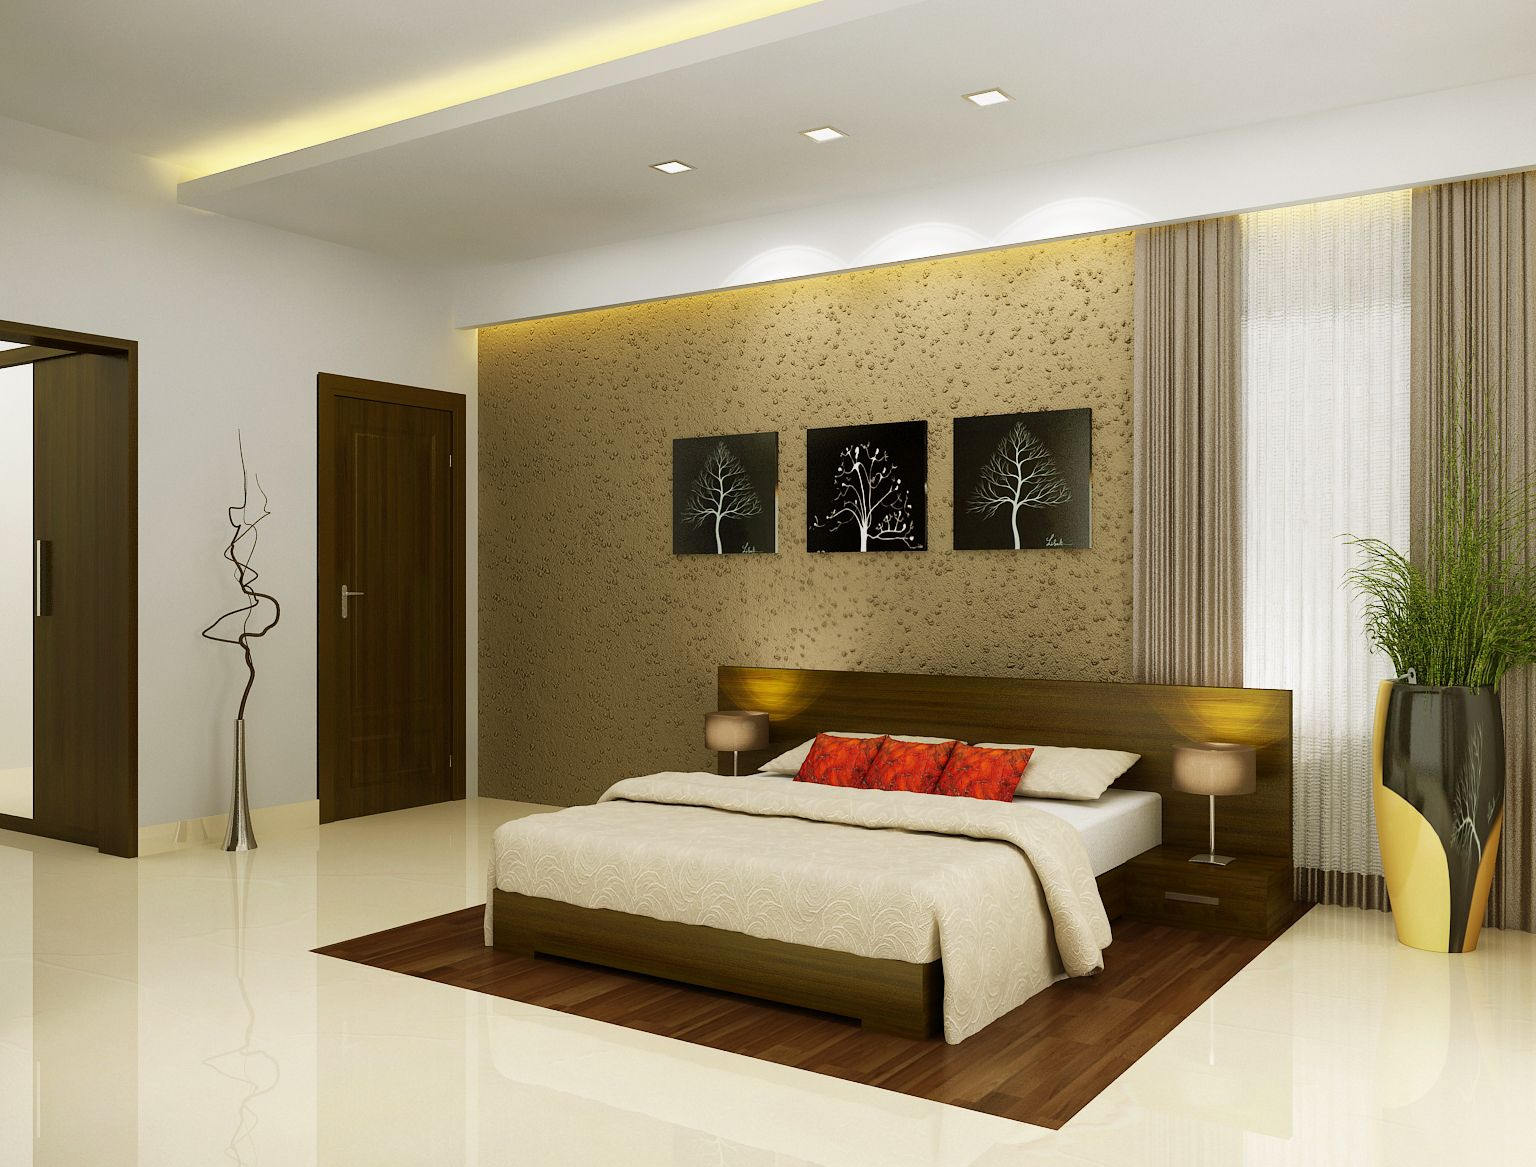 Bedroom design kerala style design ideas 2017 2018 for New look bedroom ideas